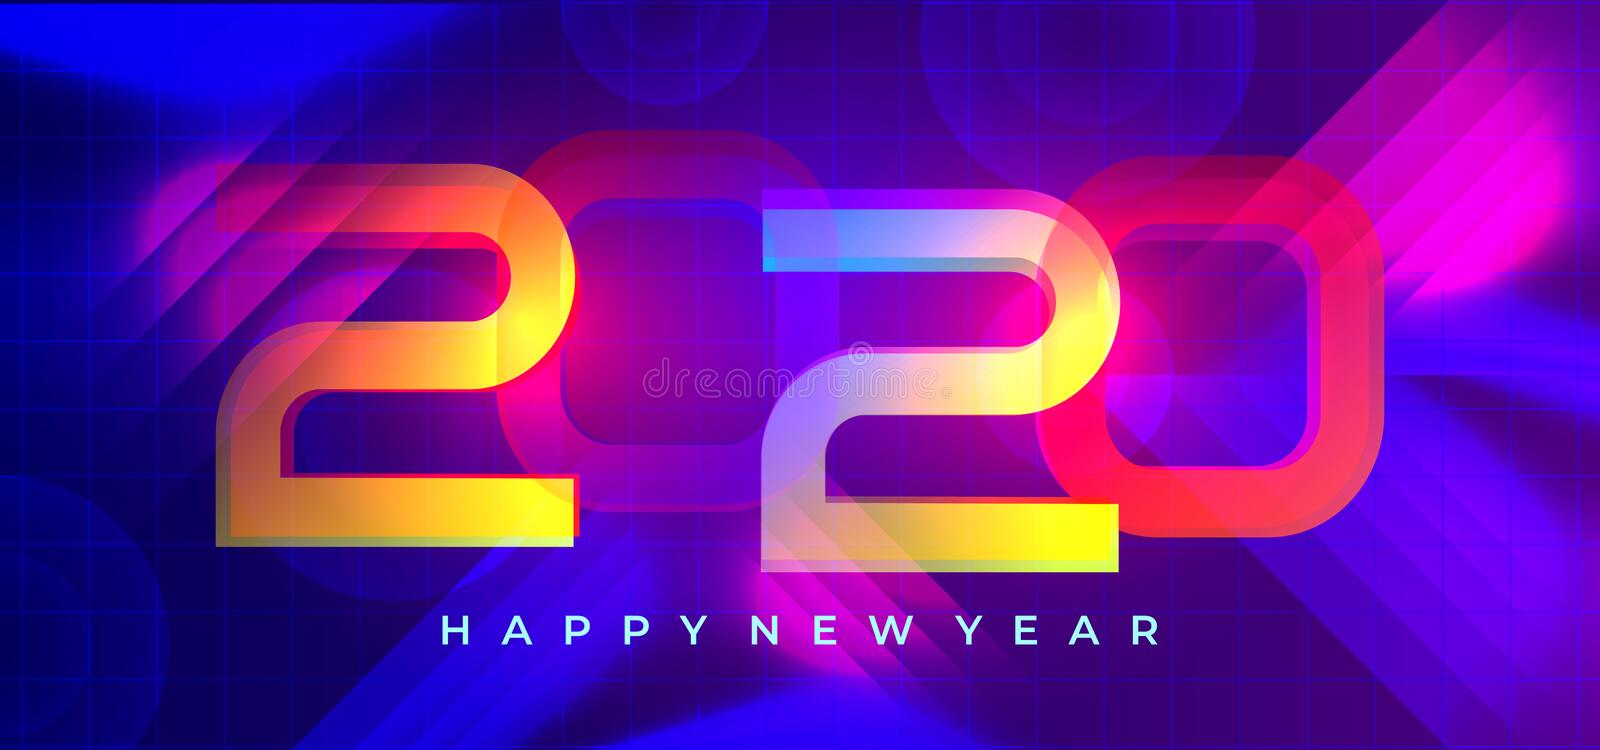 Colorful happy new year 2020 greeting modern design. Modern greeting celebration with neon lights and gradient colorful background stock illustration